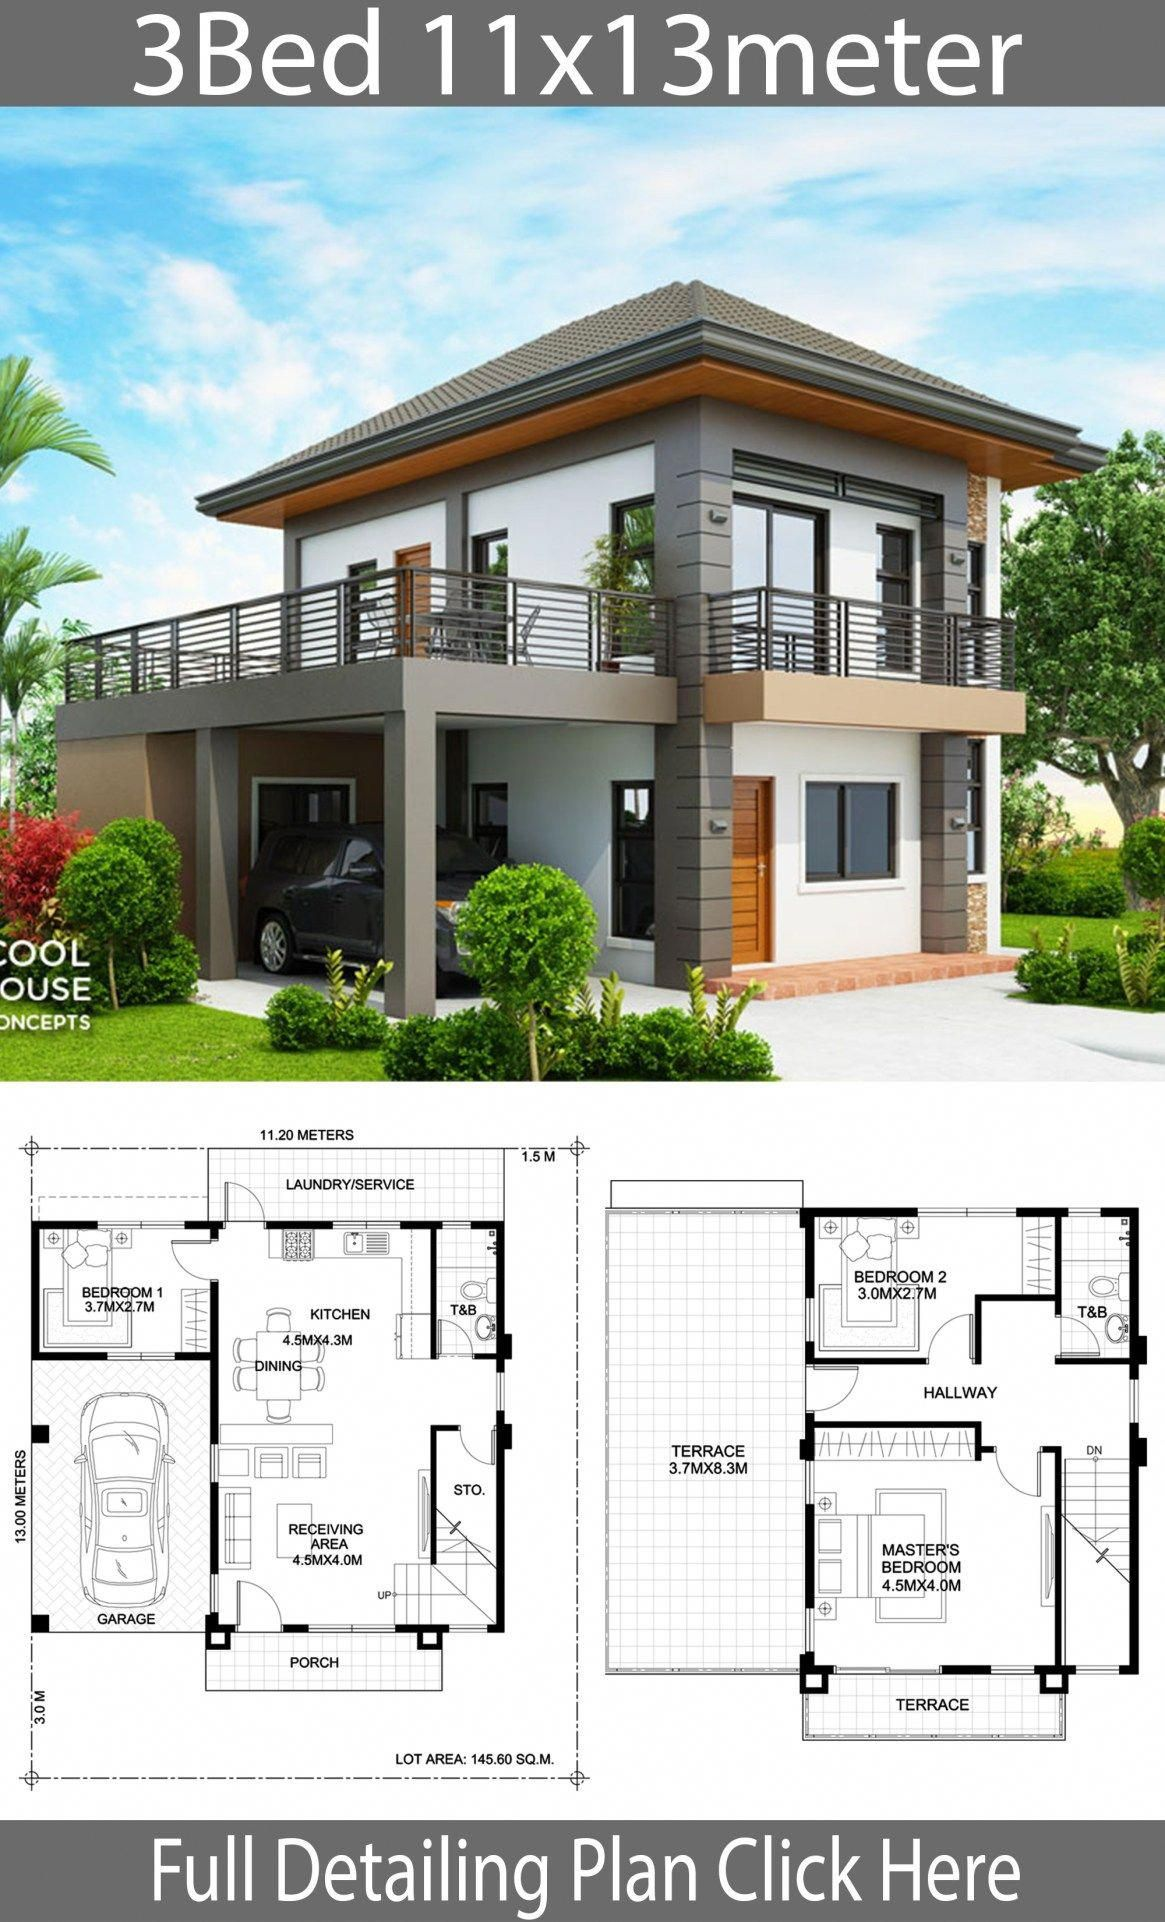 Home Design Plan 11x13m With 3 Bedrooms Home Design With Plansearch Modernhomeinteriors Modern House Design Model House Plan Architectural House Plans